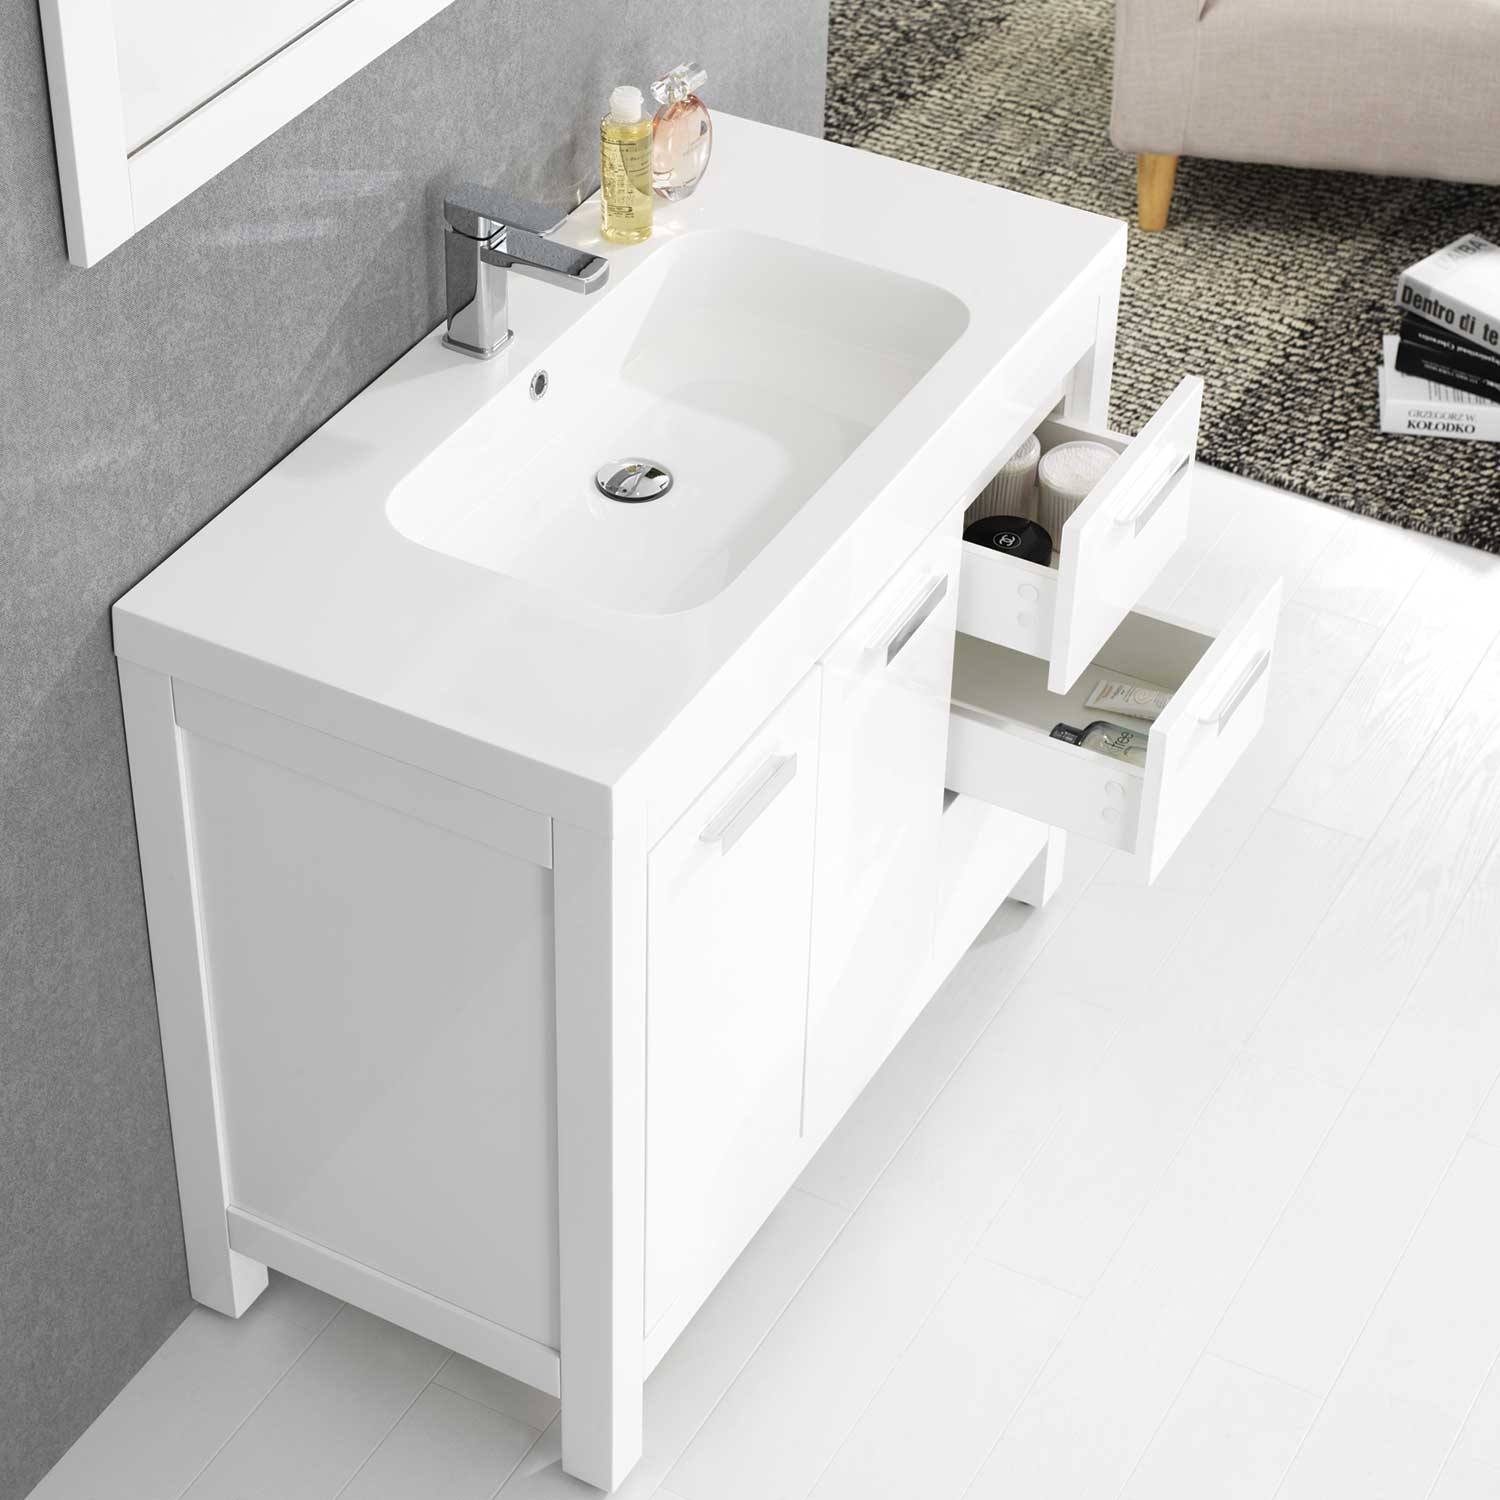 39 5 modern bathroom vanity glossy white finish optional mirror rs